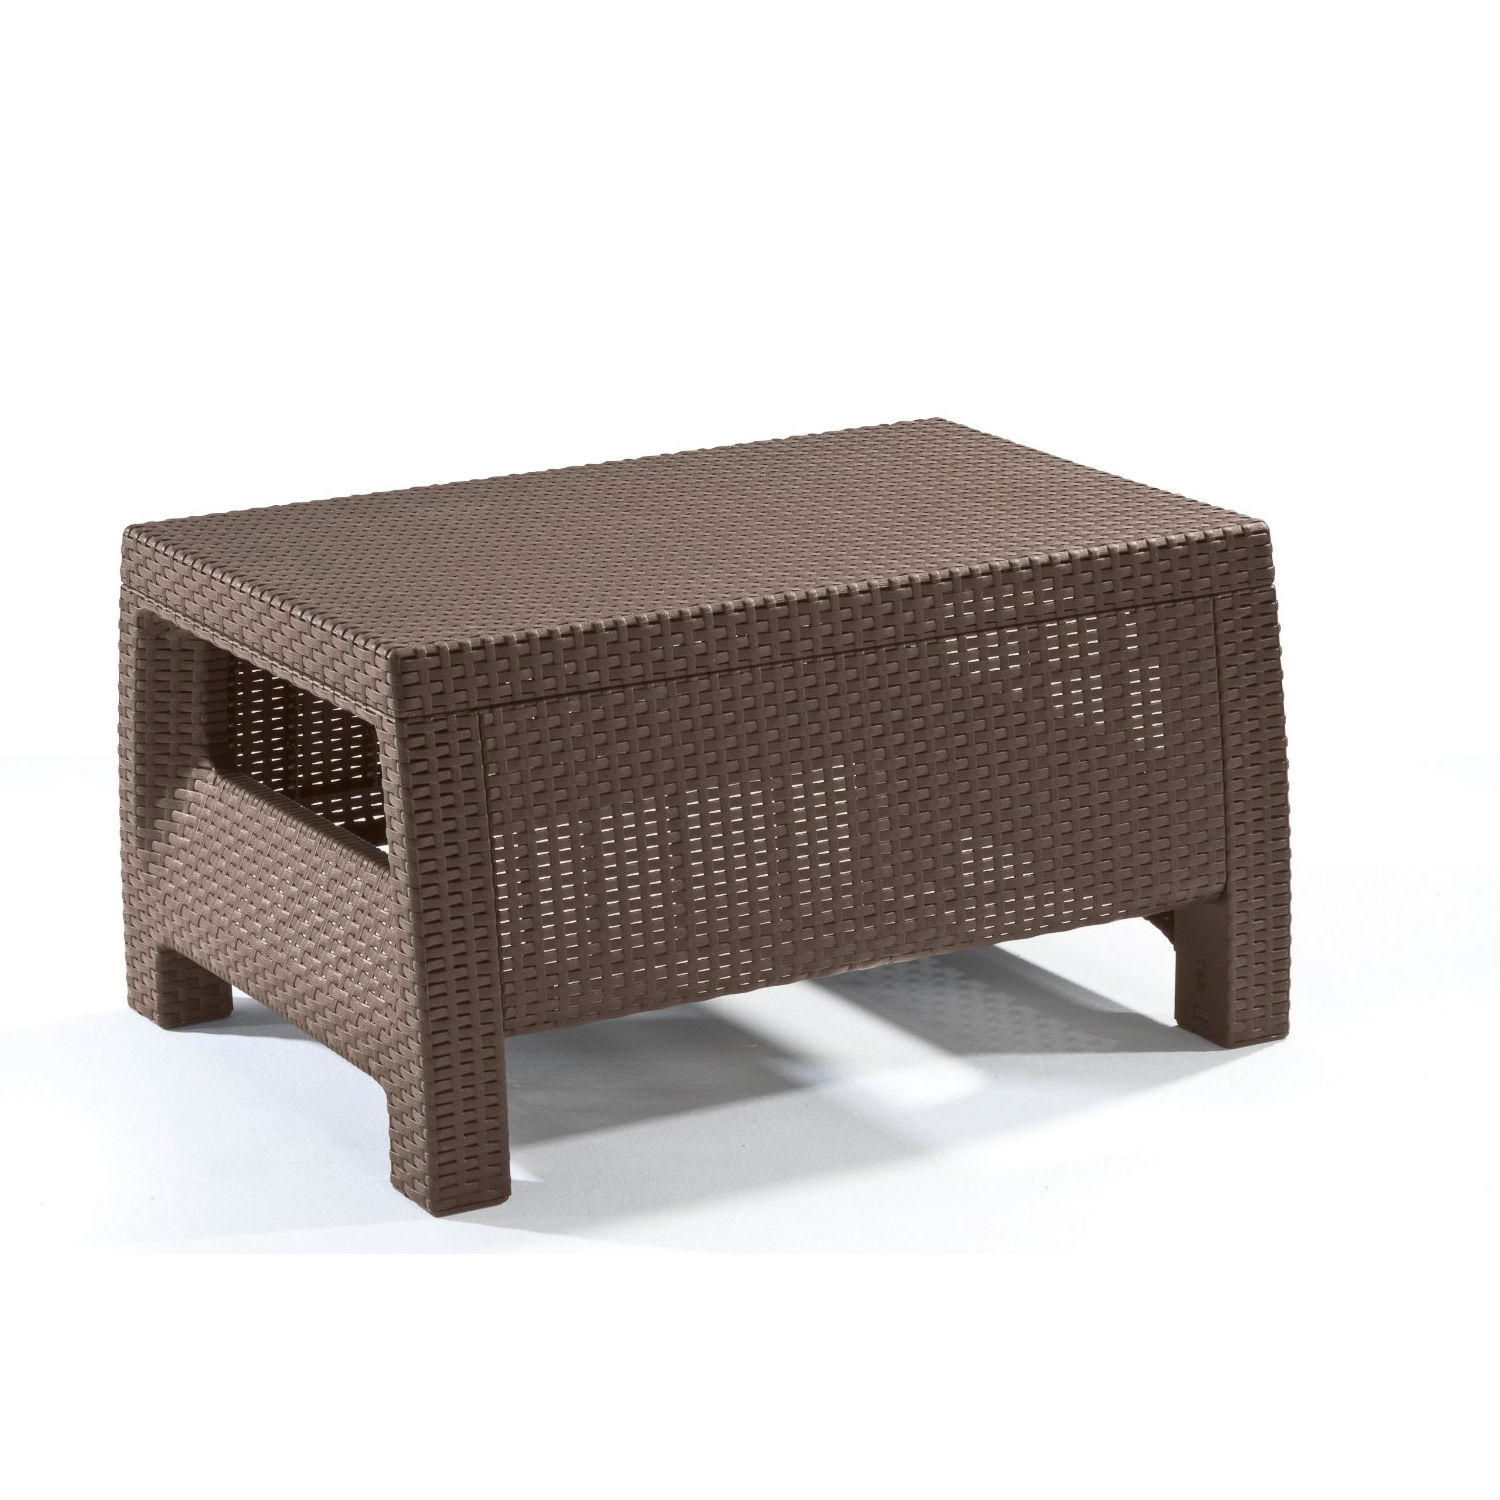 Modern patio table ottoman in brown outdoor weather resistant plastic rattan fastfurnishings com